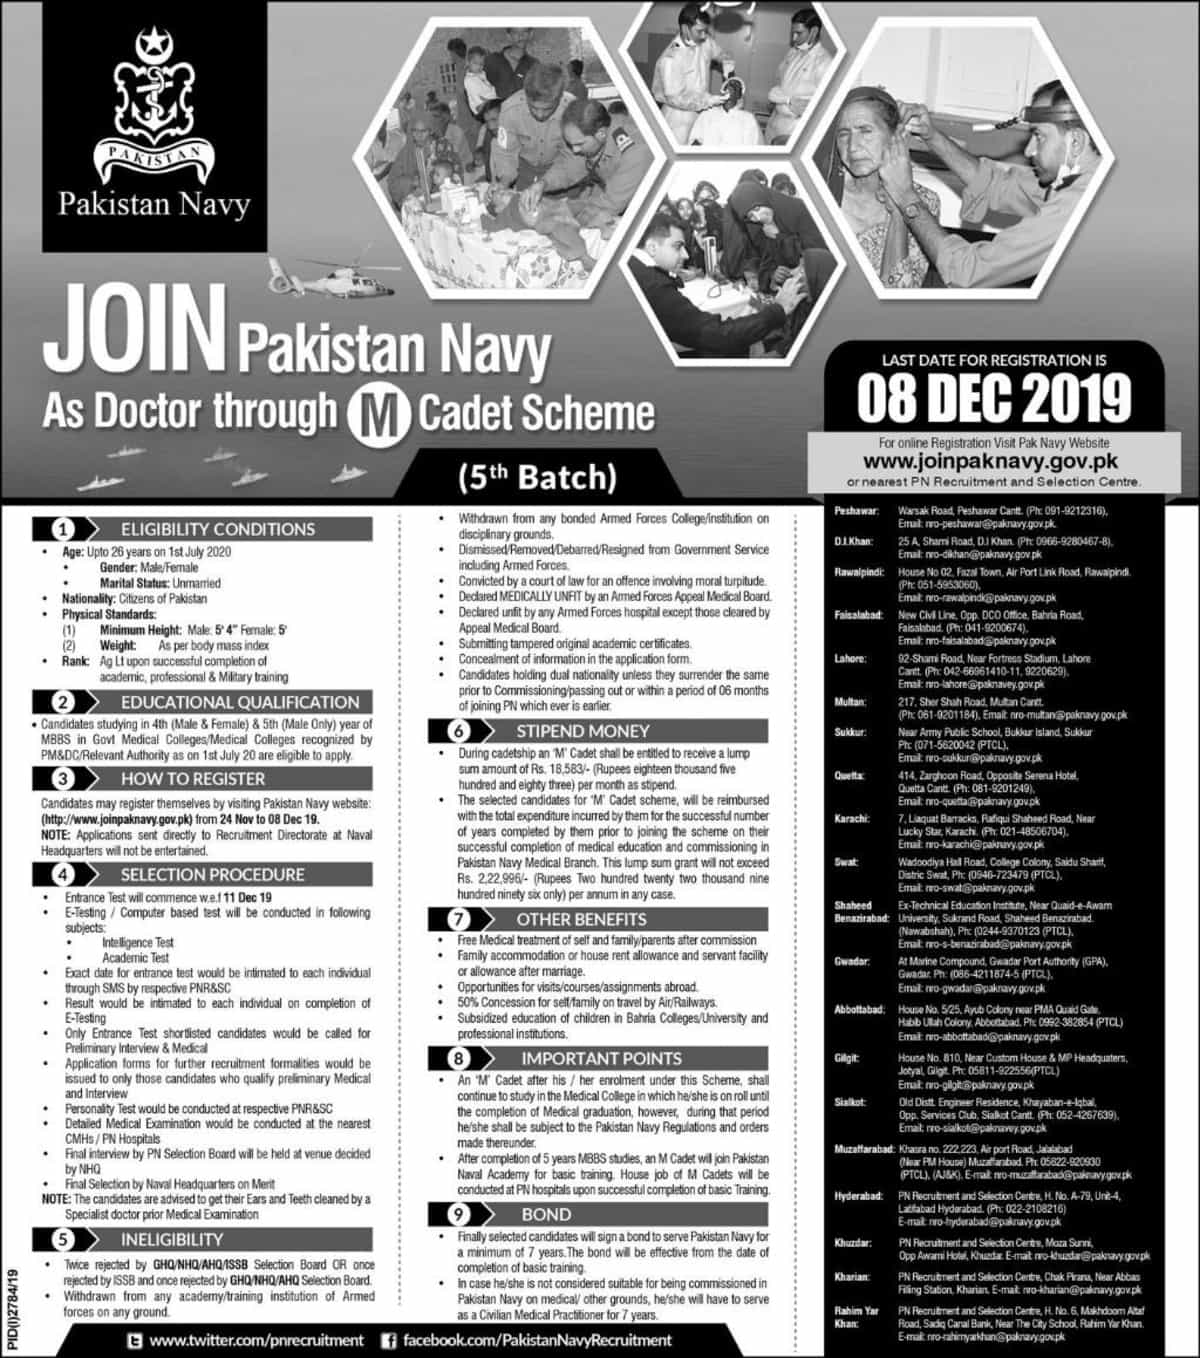 Join Pakistan Navy Jobs 2019 as Doctor through M Cadet Scheme 5th Batch Latest Advertisement Online Registration